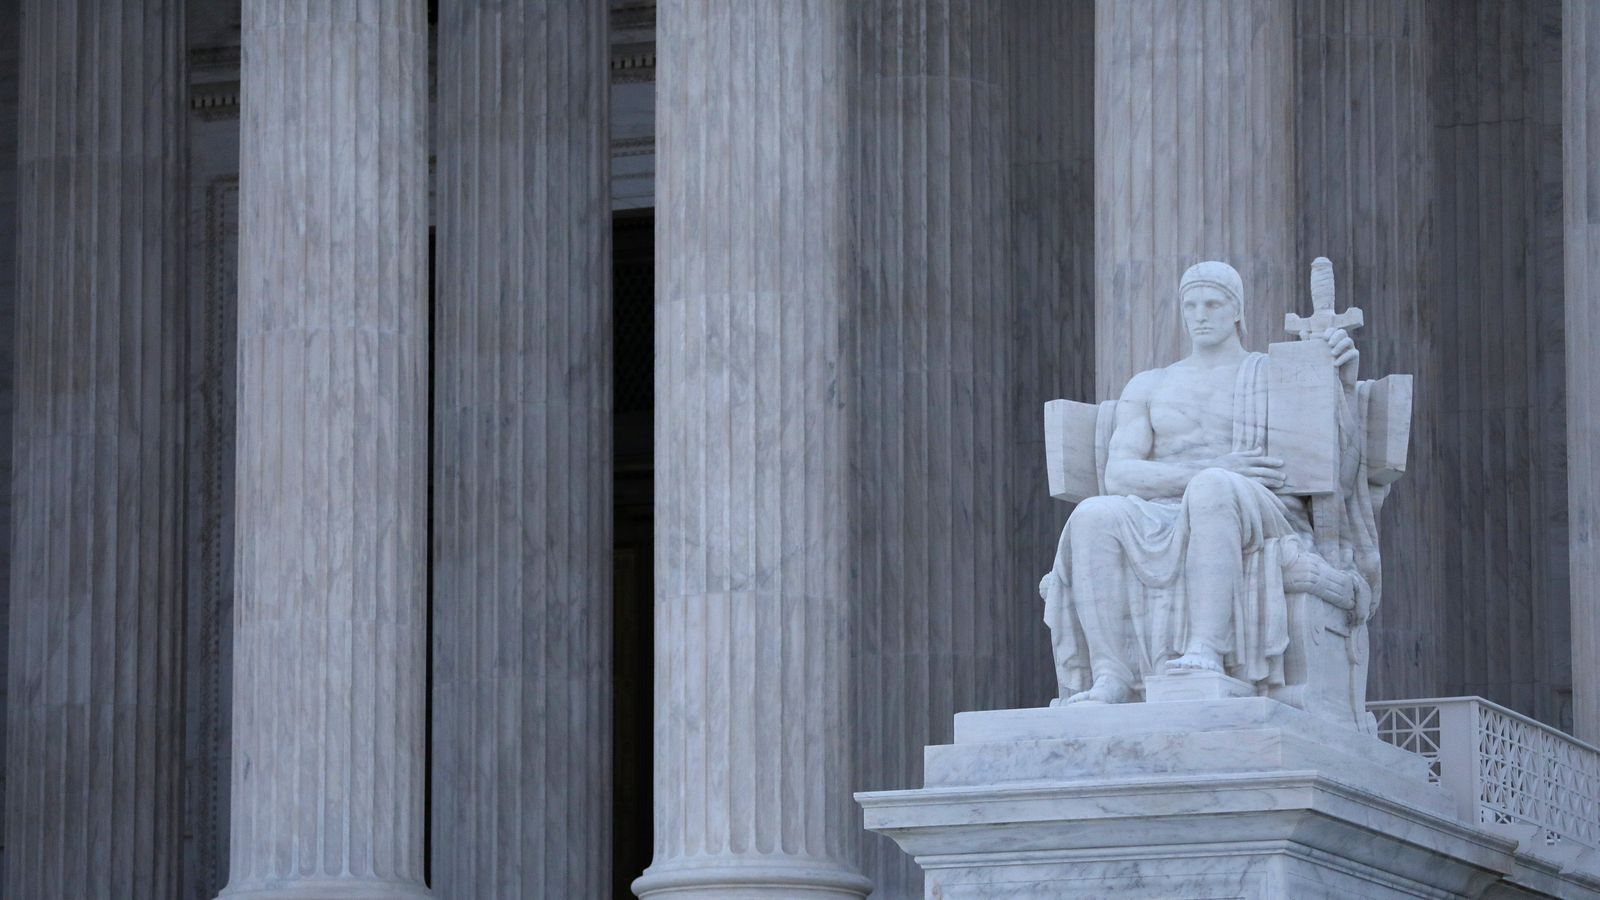 Why it matters that patent trolls won't be able to force their cases in Texas